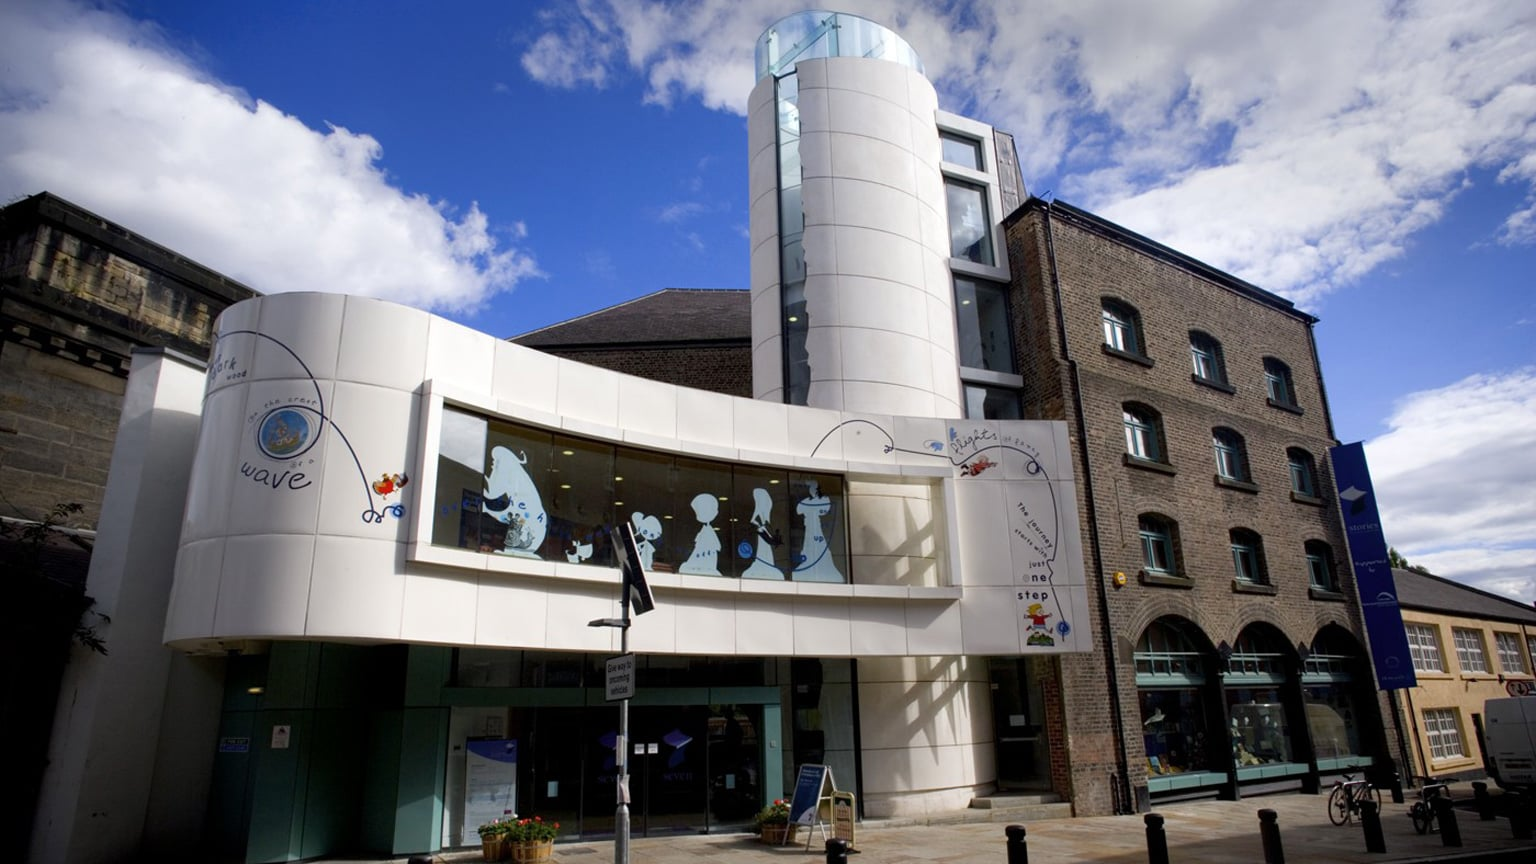 8. Seven Stories, Newcastle - Free entry with National Art Pass